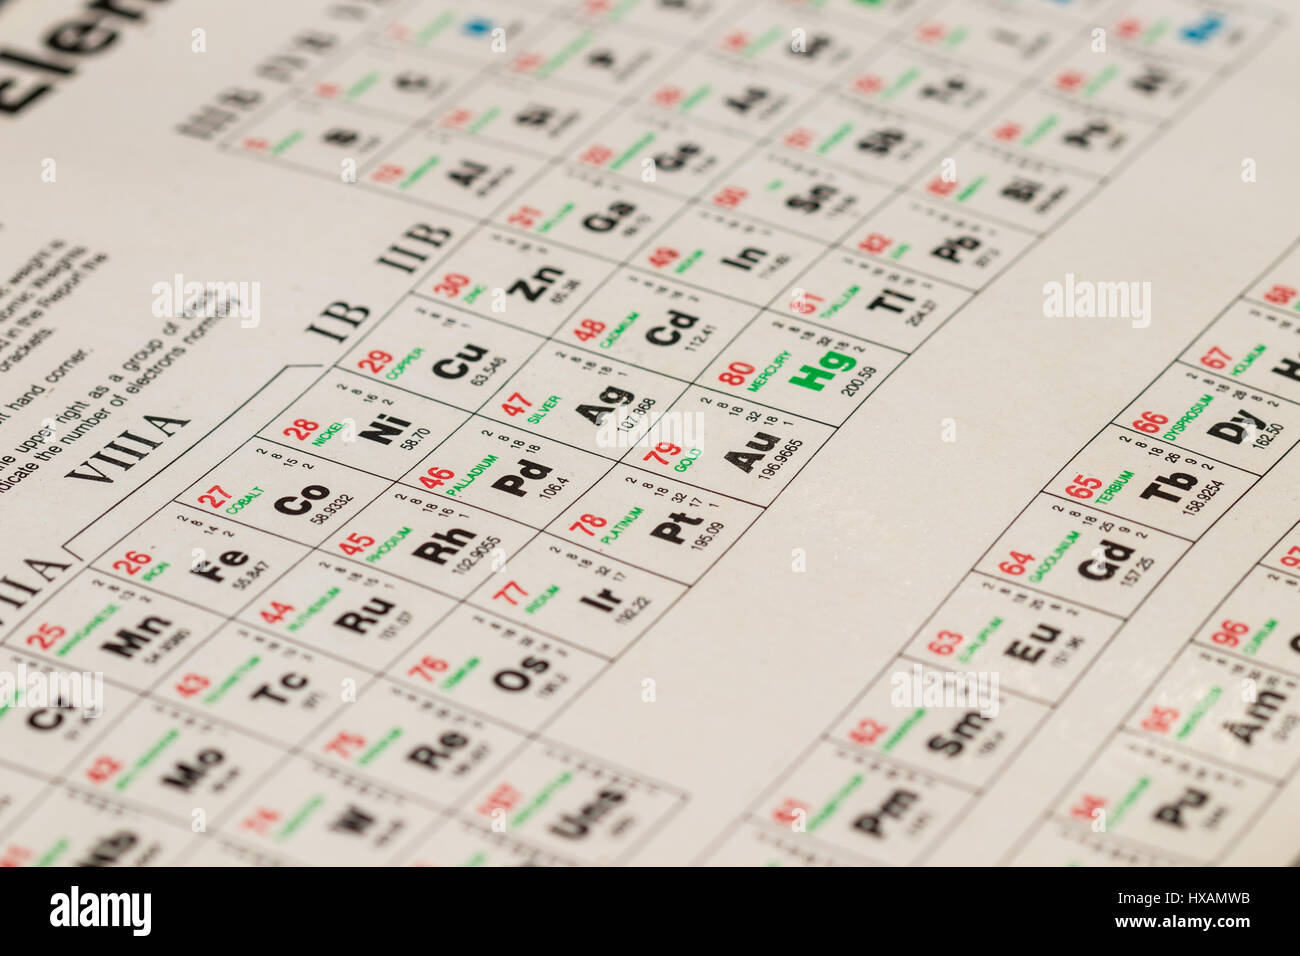 Detail Of An Old Periodic Table Of Elements, Showing Their Symbol, Atomic  Weight,